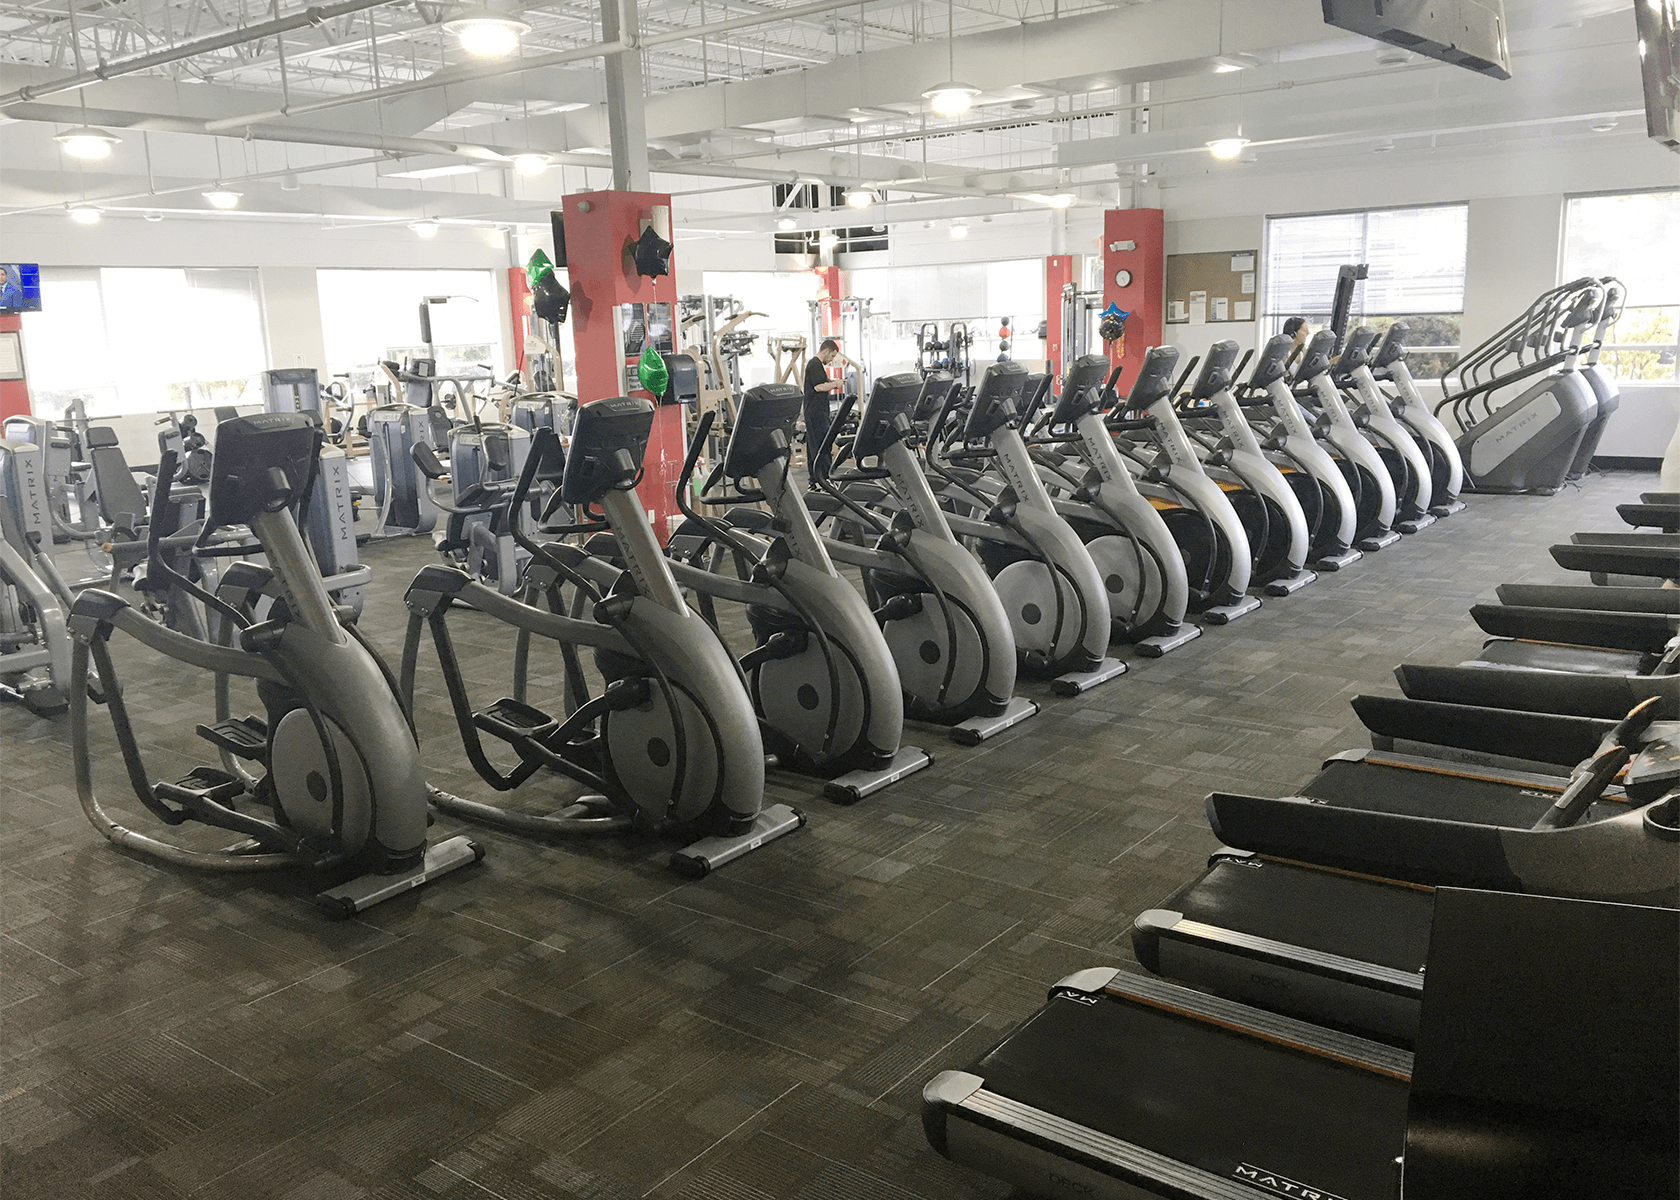 Gym with rows of exercise bikes and treadmills